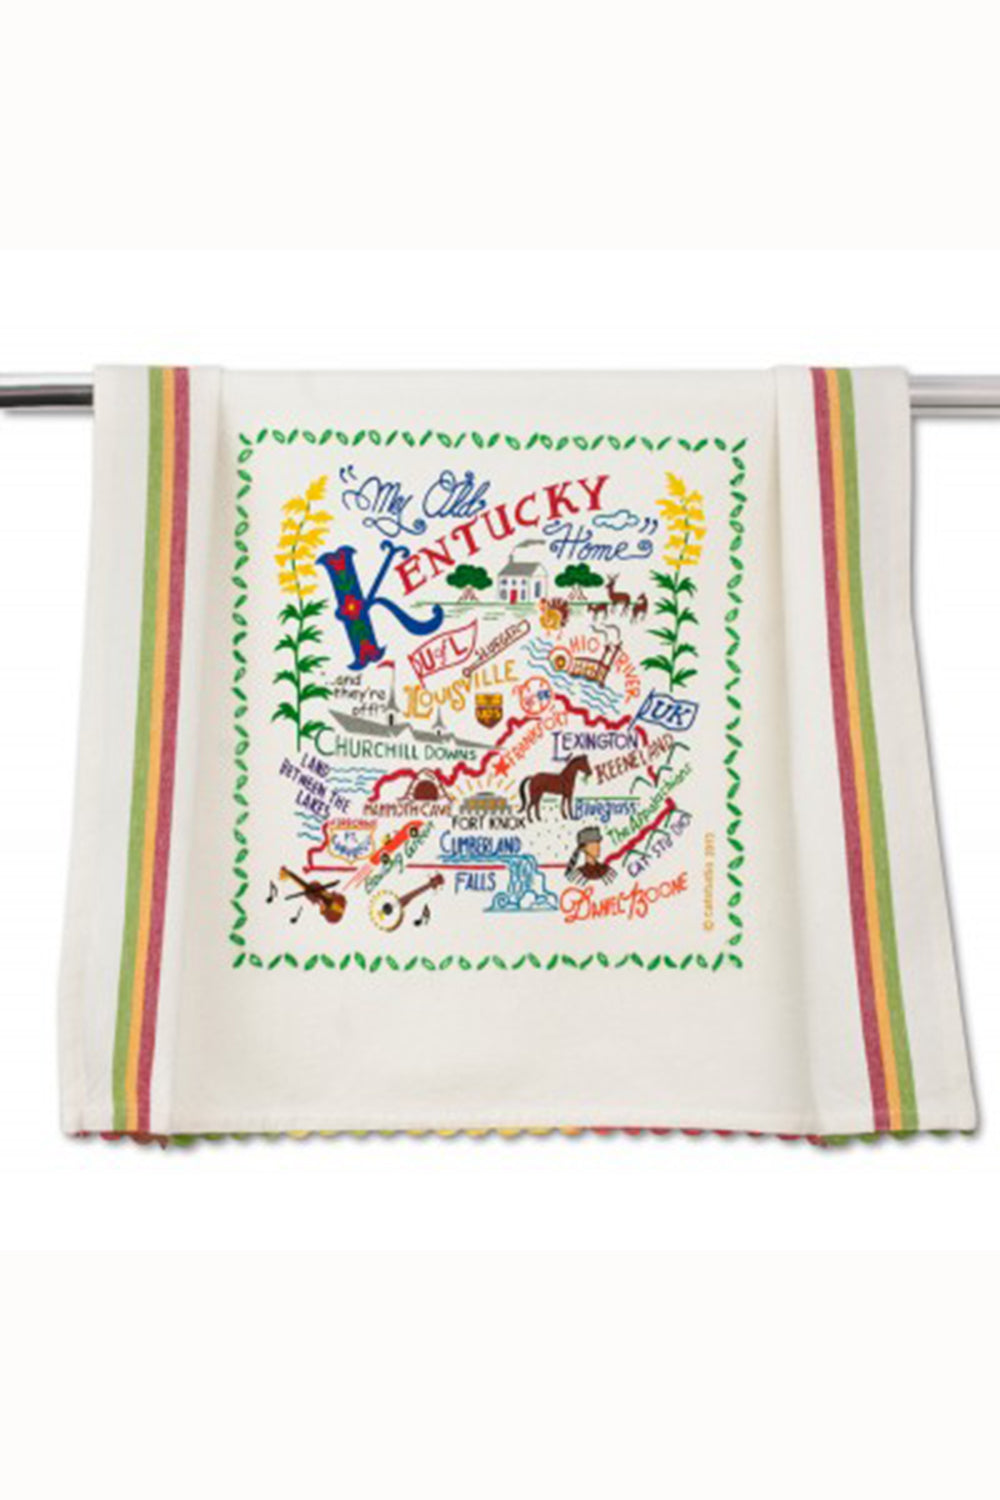 Embroidered Dish Towel  - Kentucky